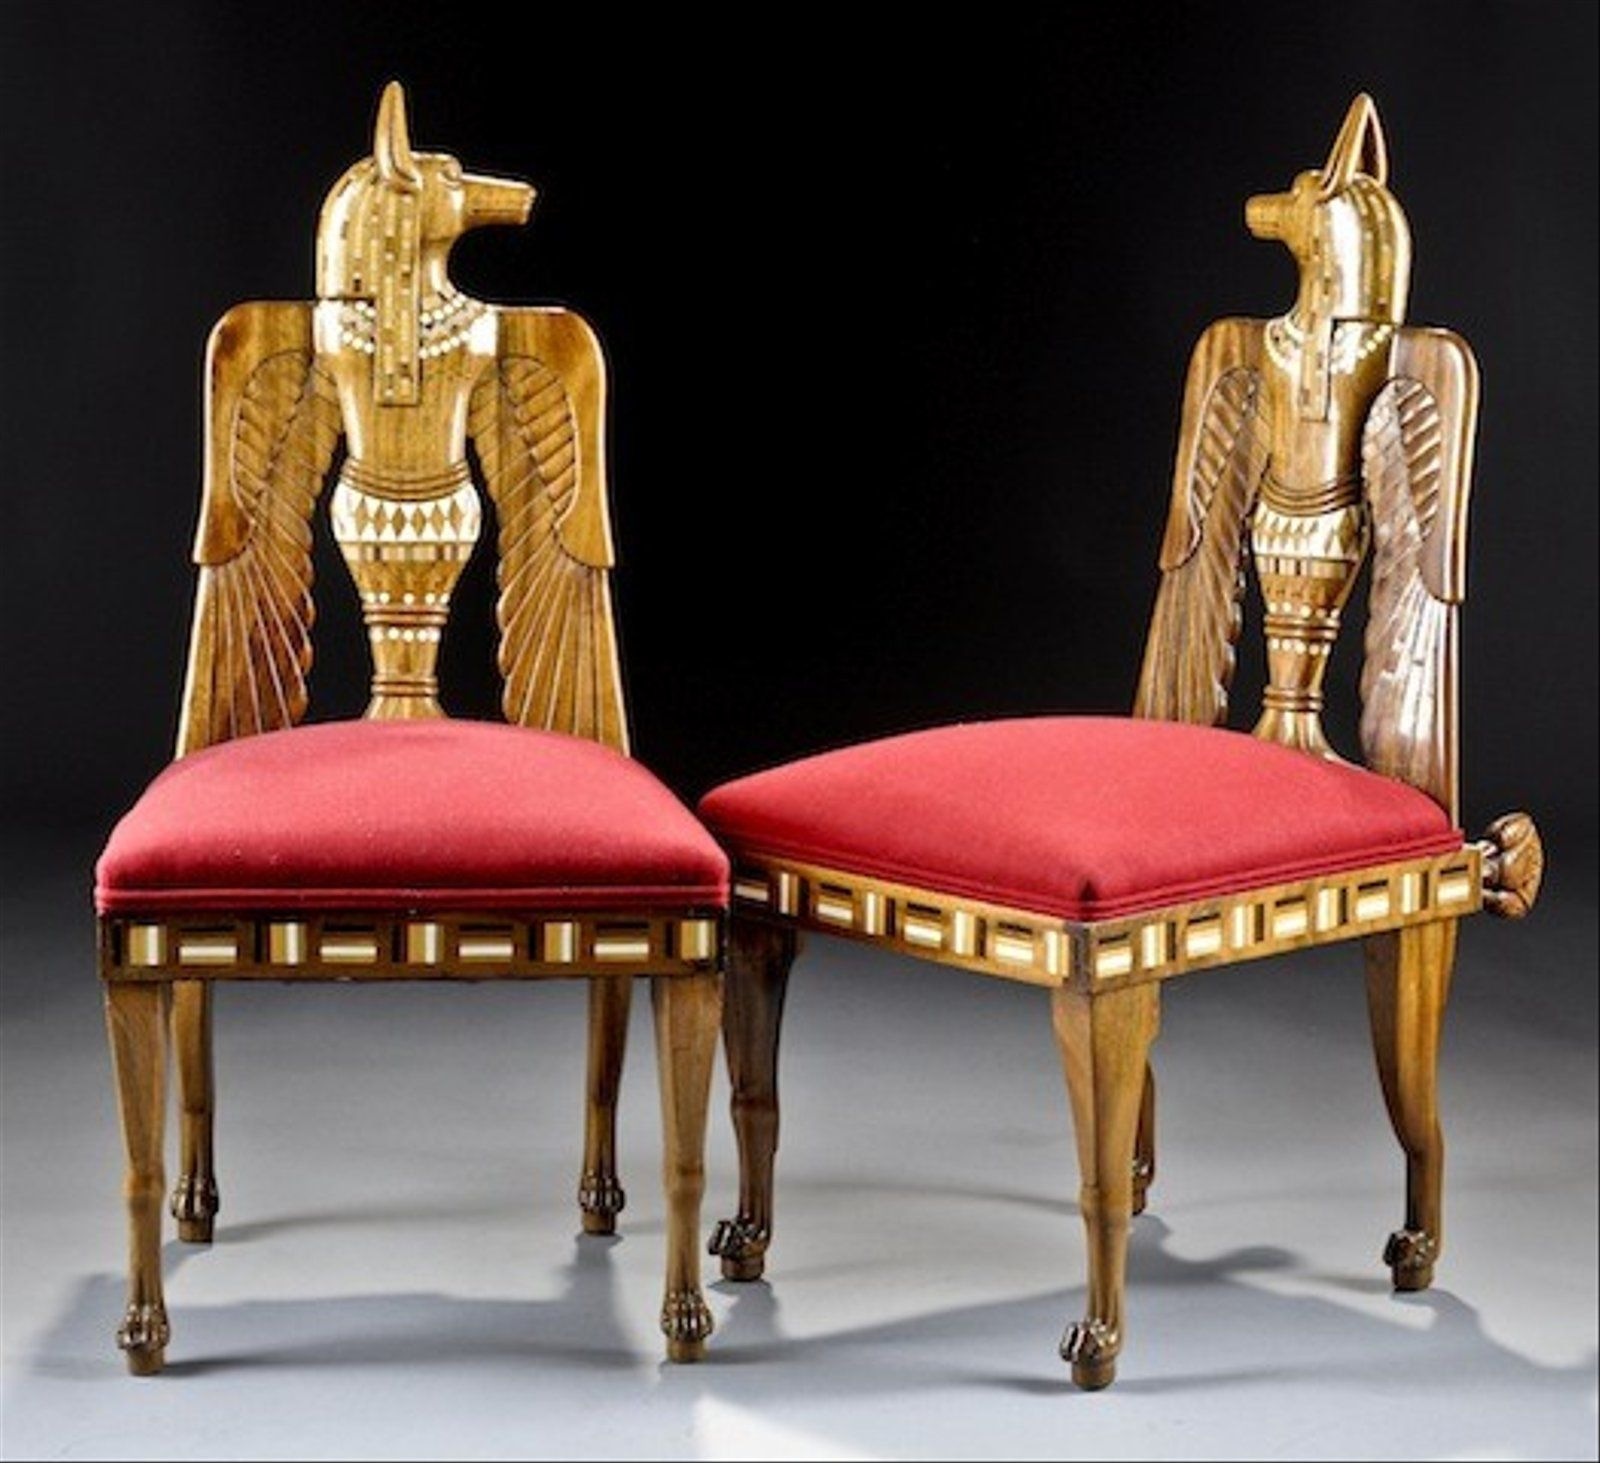 Awesome 431: A PAIR OF NICELY CARVED EGYPTIAN REVIVAL FRUITWOOD